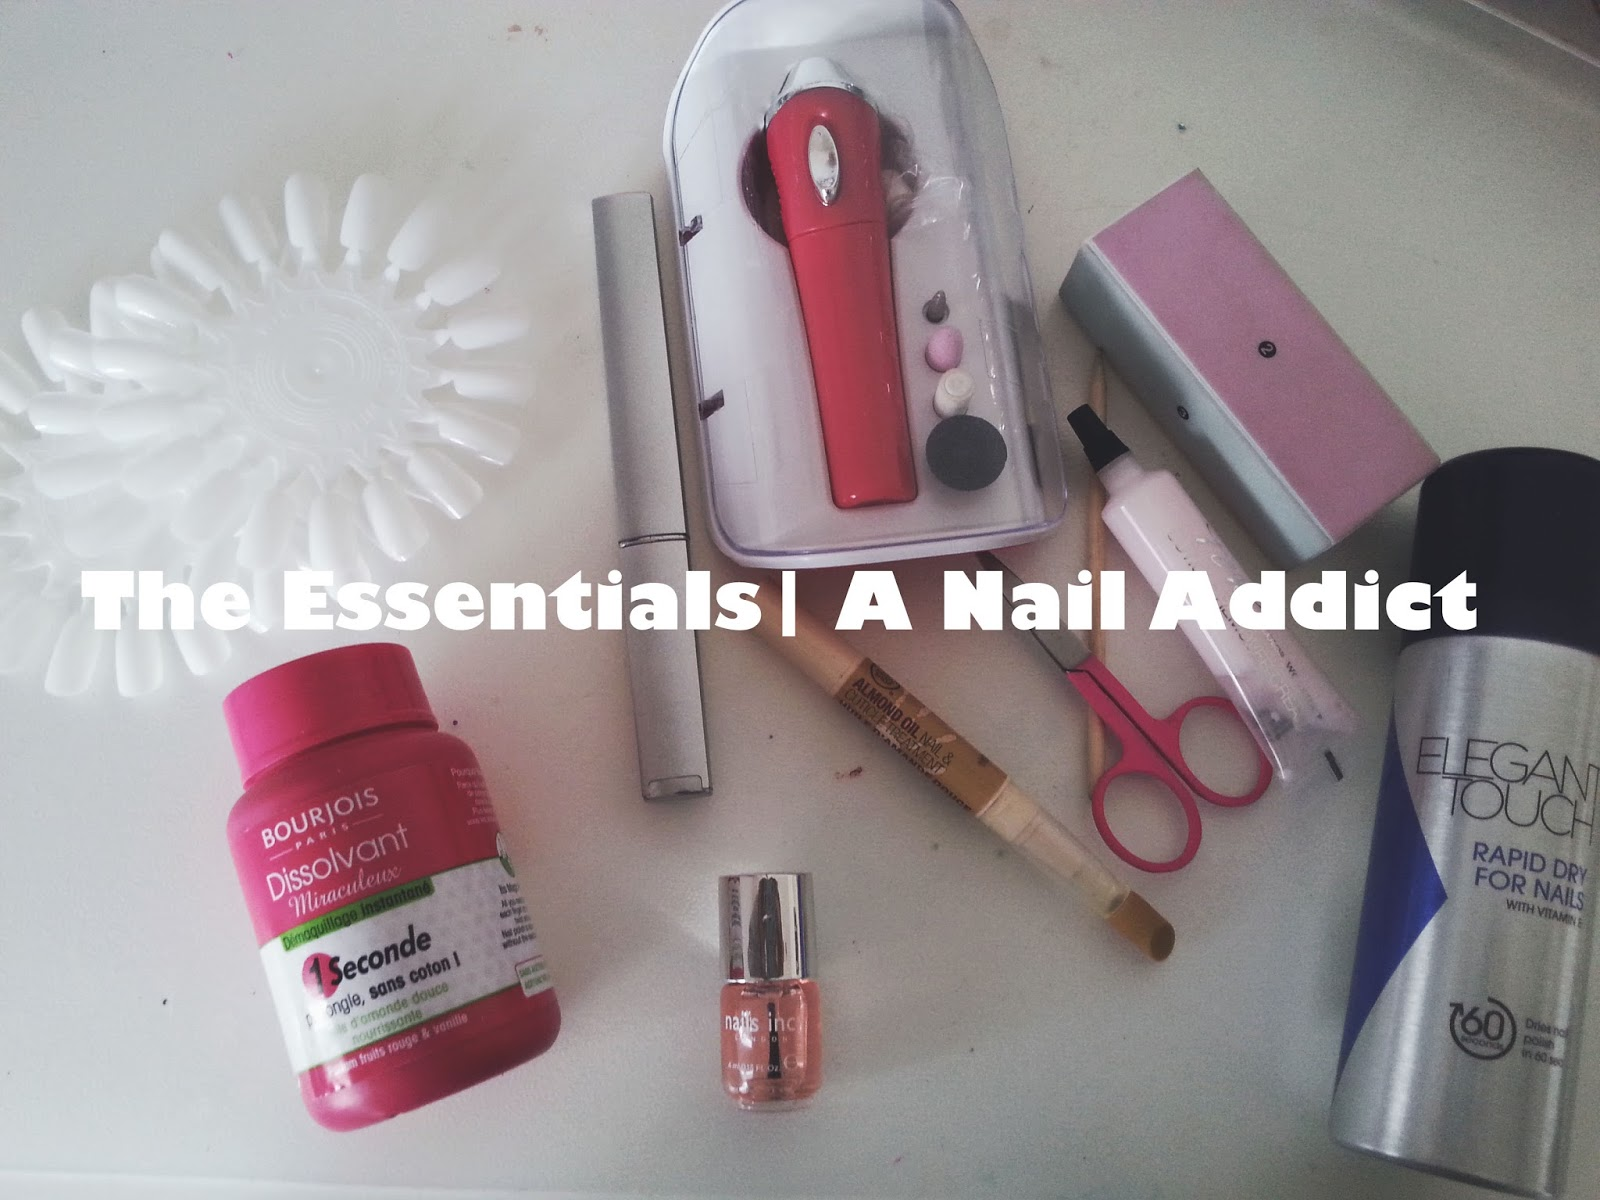 The Essentials|| A Nail Addict